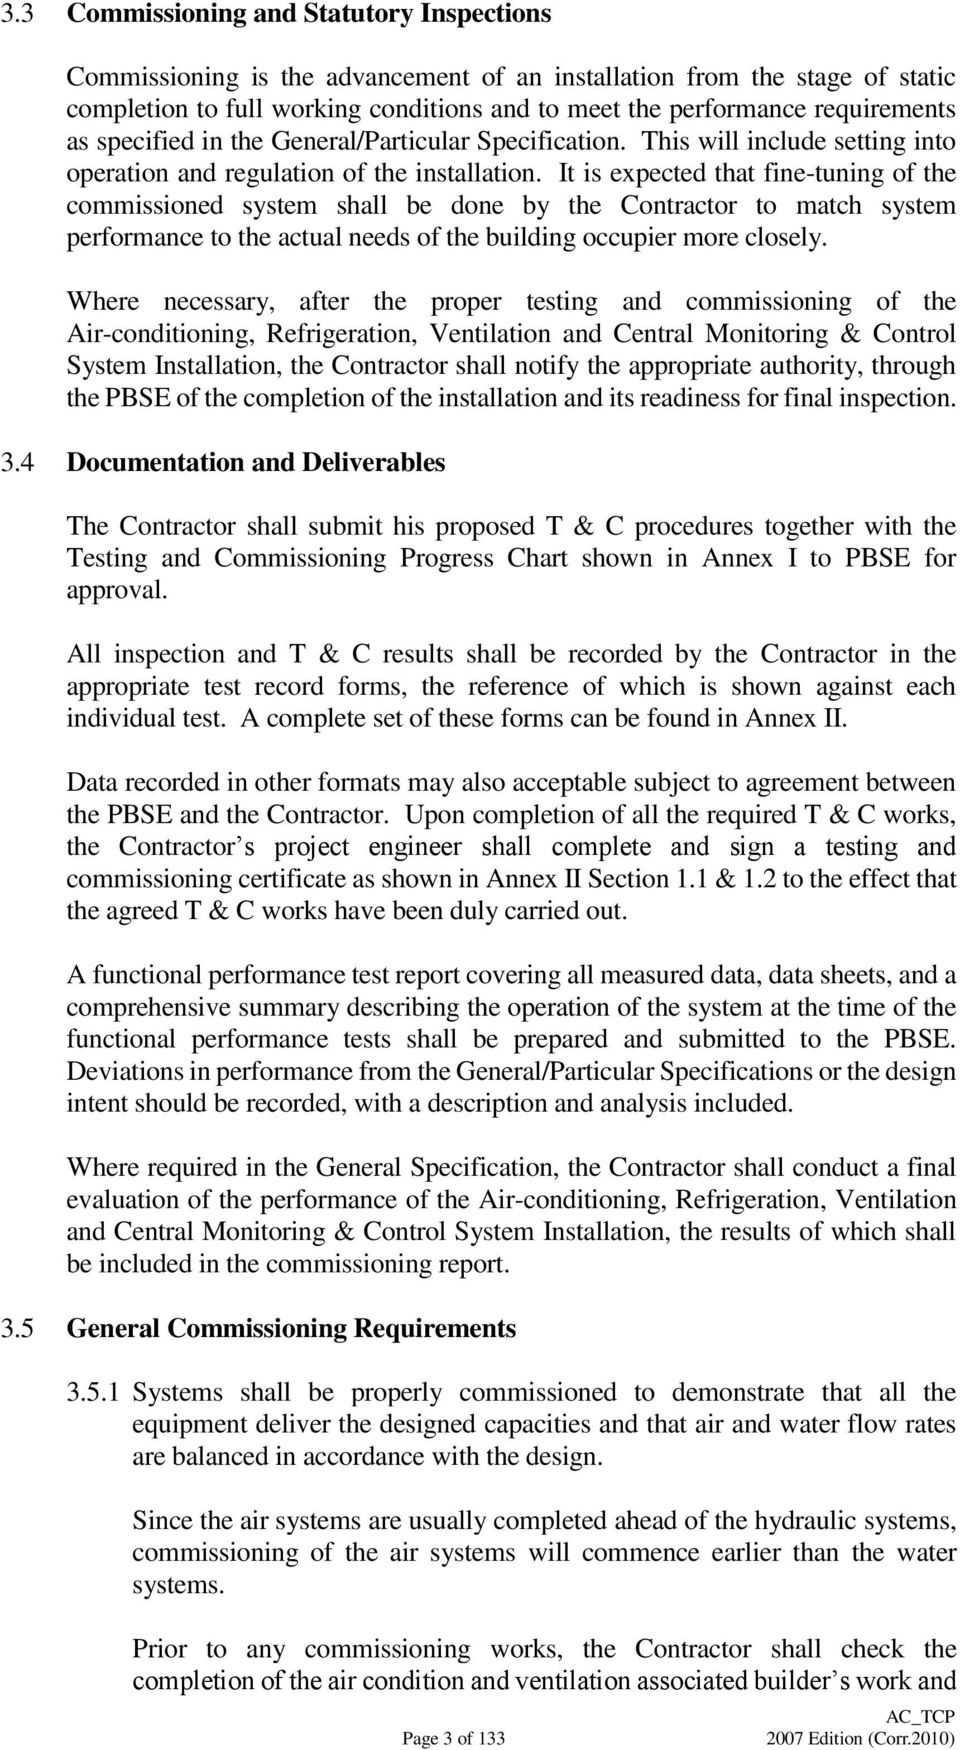 commissioning engineer cover letter banking consultant cover page 12 commissioning engineer cover letterhtml instrument and control engineer cover letter - Instrument Commissioning Engineer Sample Resume